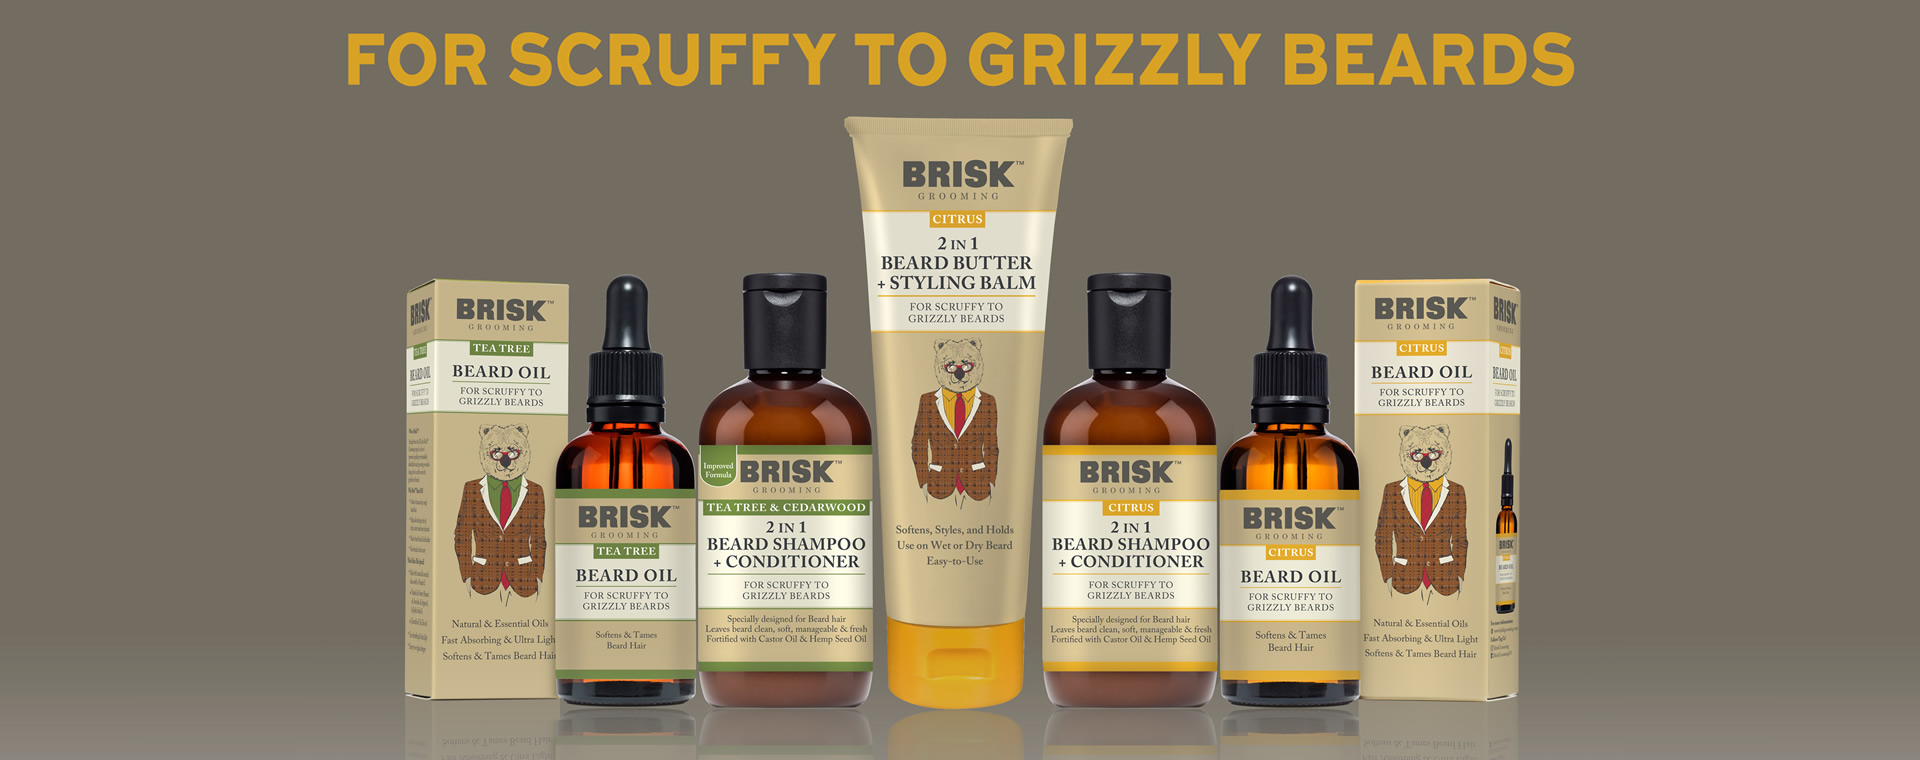 Brisk Grooming - Beard Oil, Shampoo, Beard Butter, Styling Balm